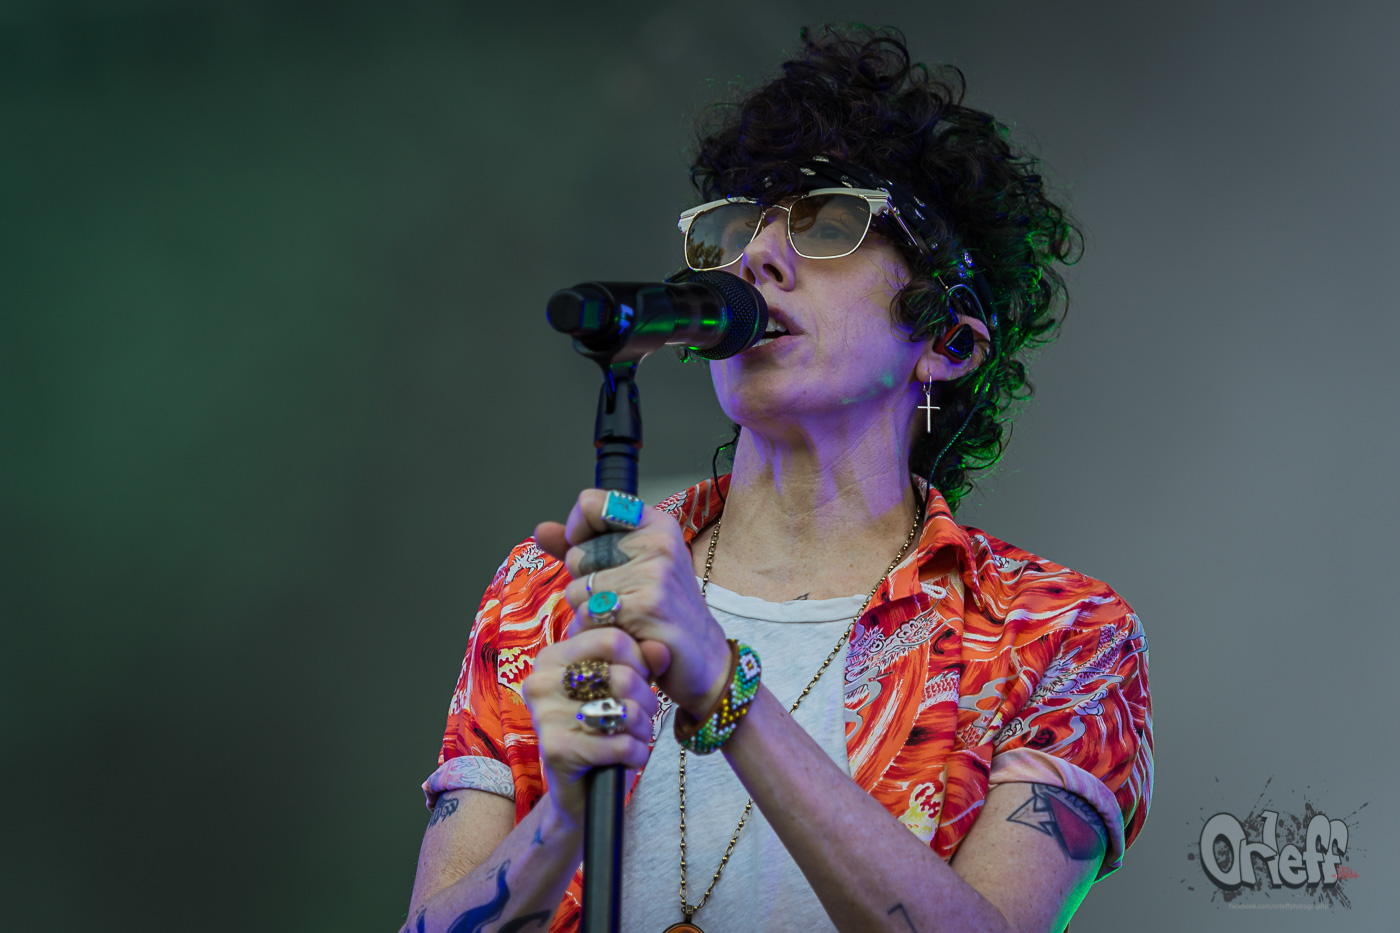 LP @ INmusic festival, 2019